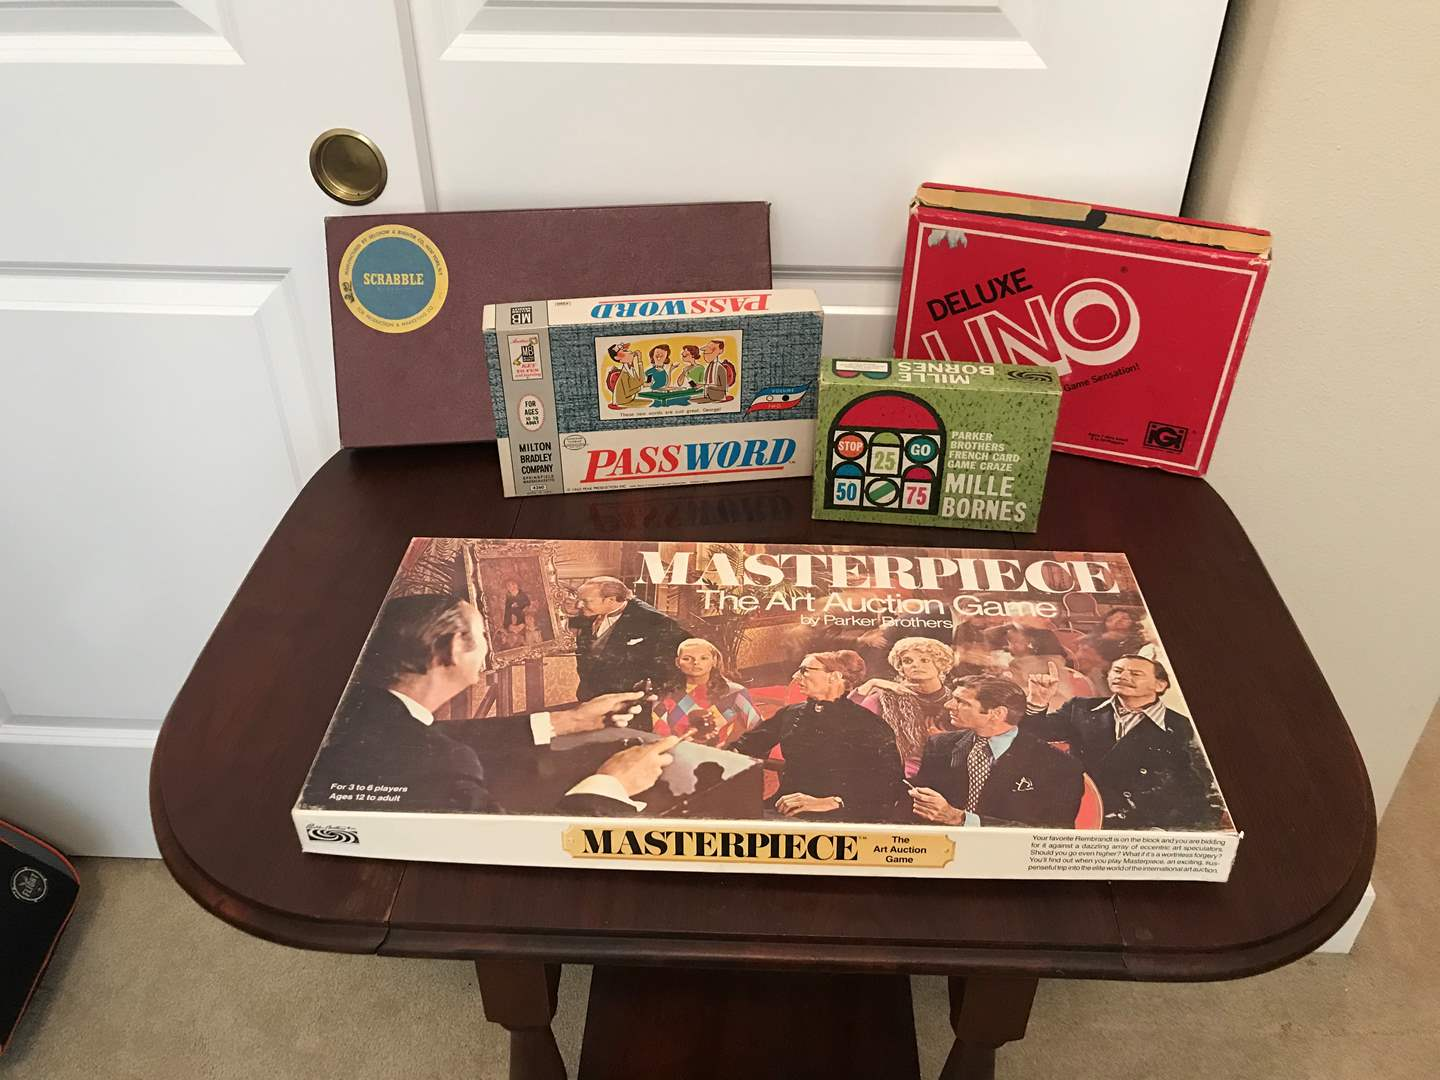 Lot # 89 - Small Selection of Vintage Games: Masterpiece, Scrabble, Uno, Password & Mille Bornes (main image)